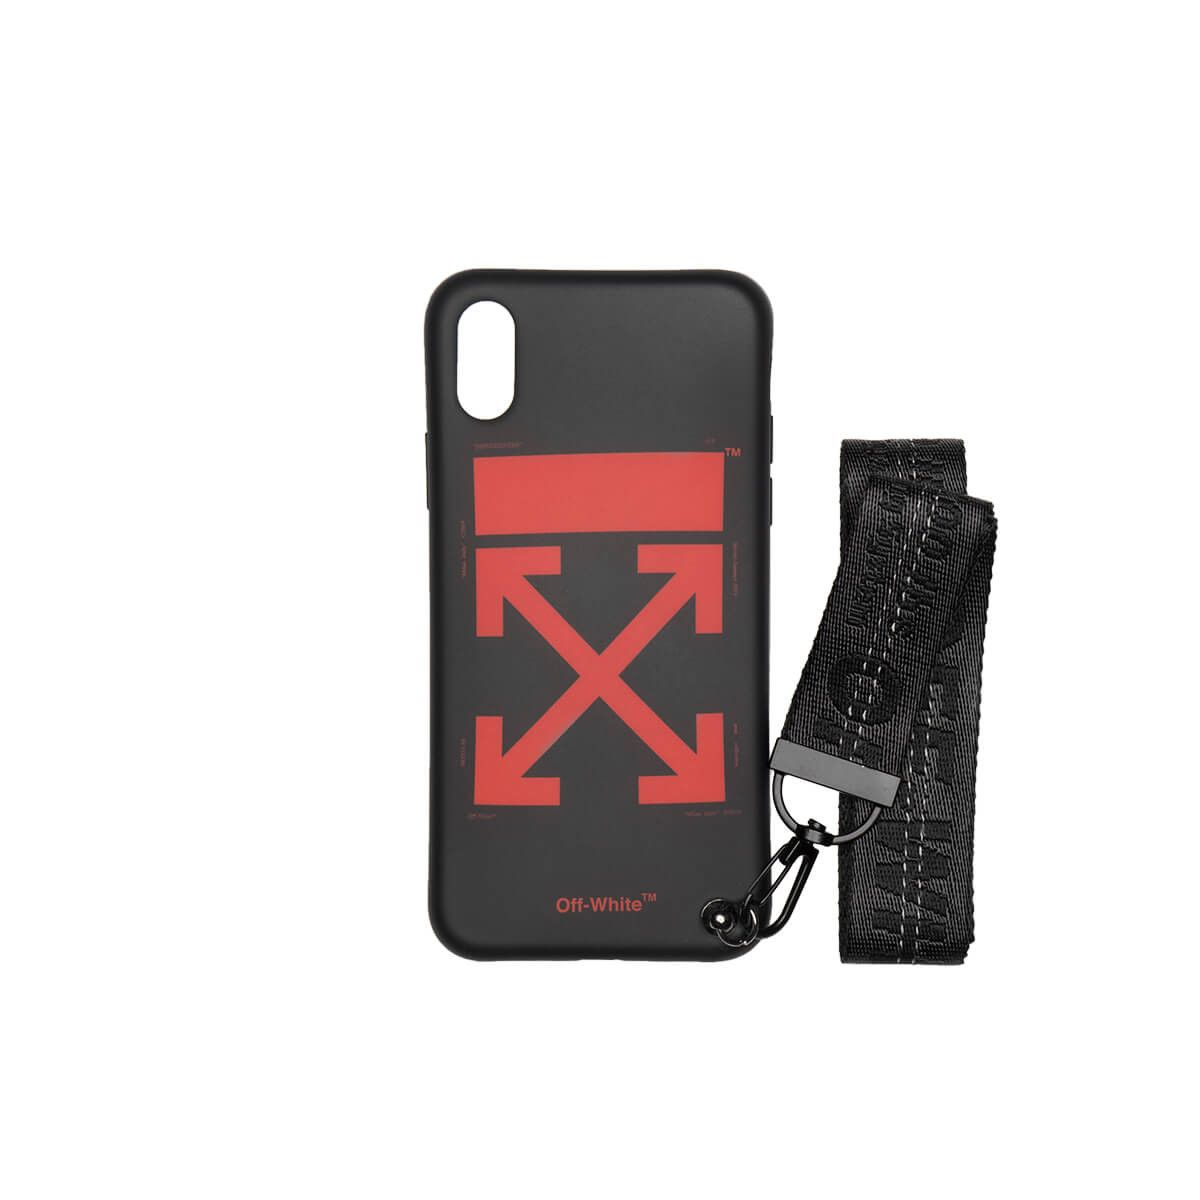 4f063192ca45 iPhone X Arrow Strap case from the Pre S S2019 Off-White c